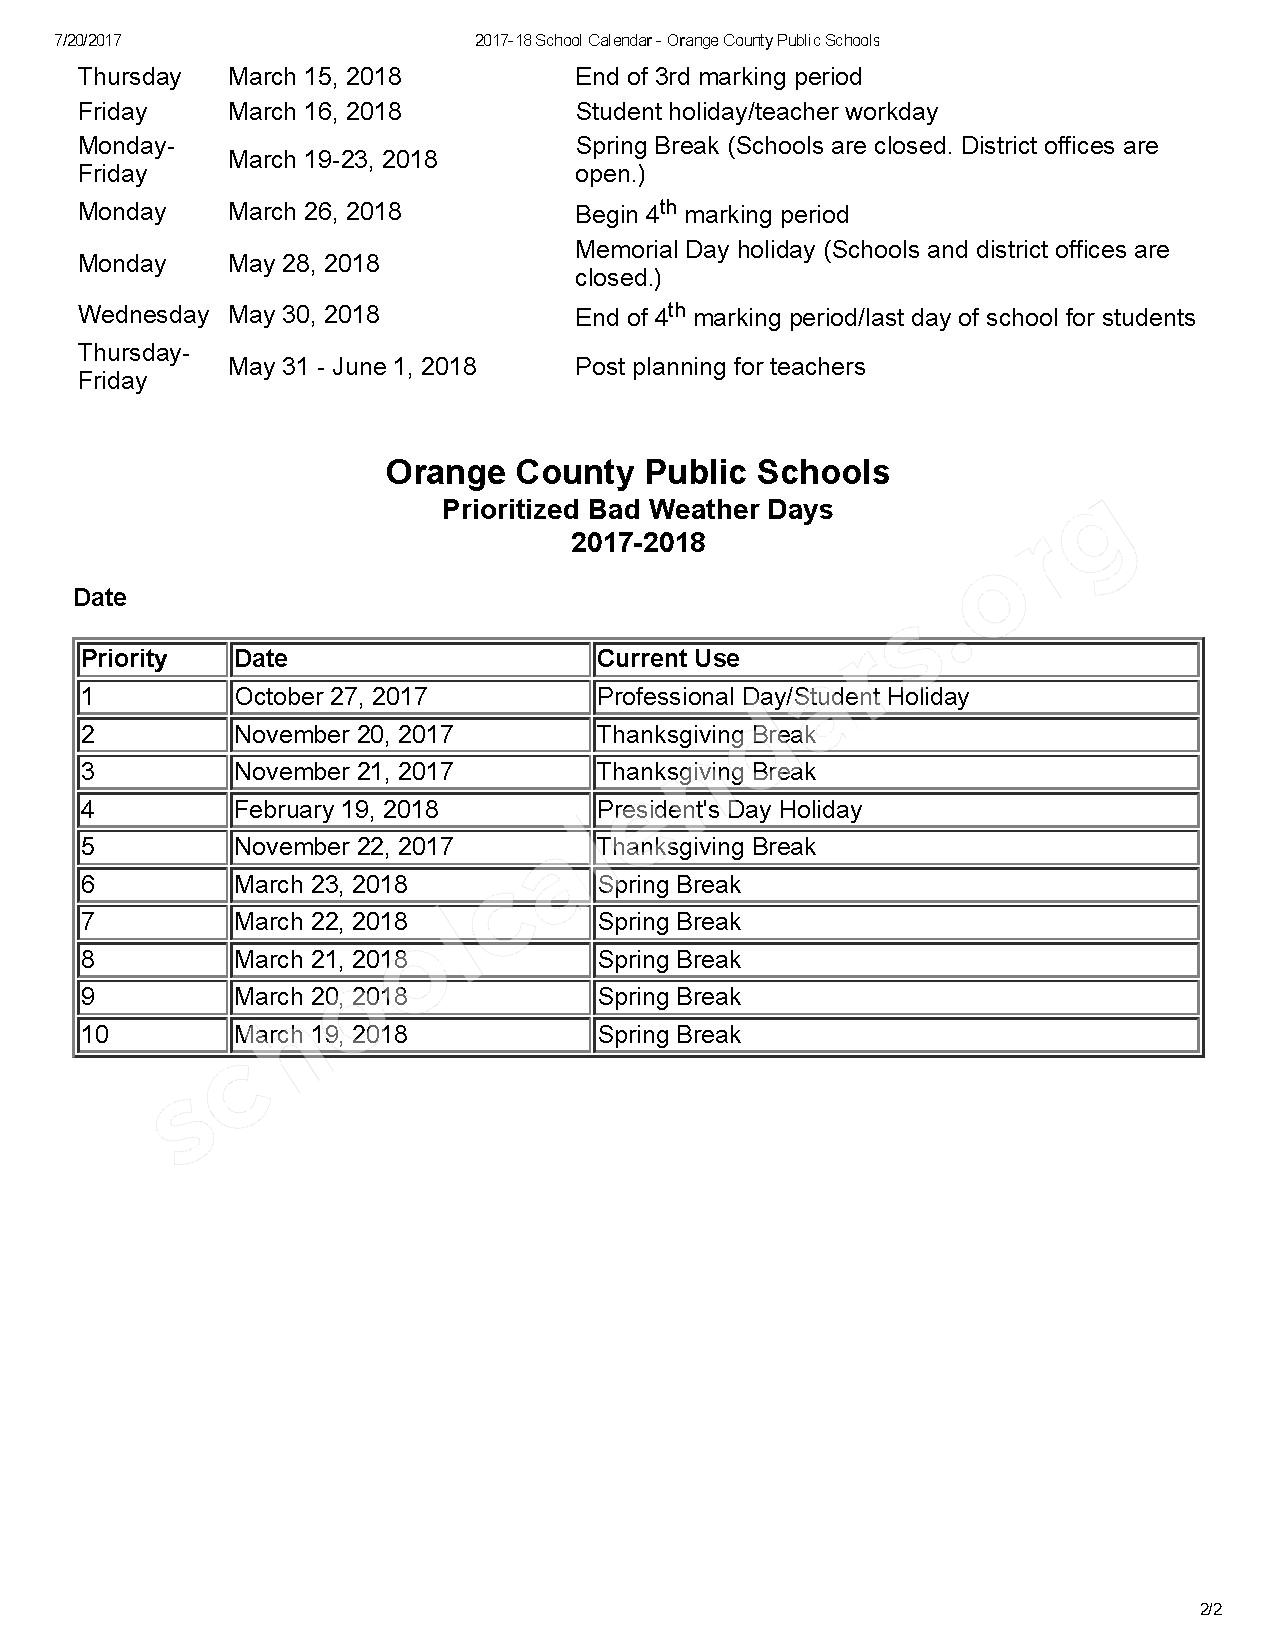 2017 - 2018 OCPS Calendar – Devereux Treatment Program – page 2